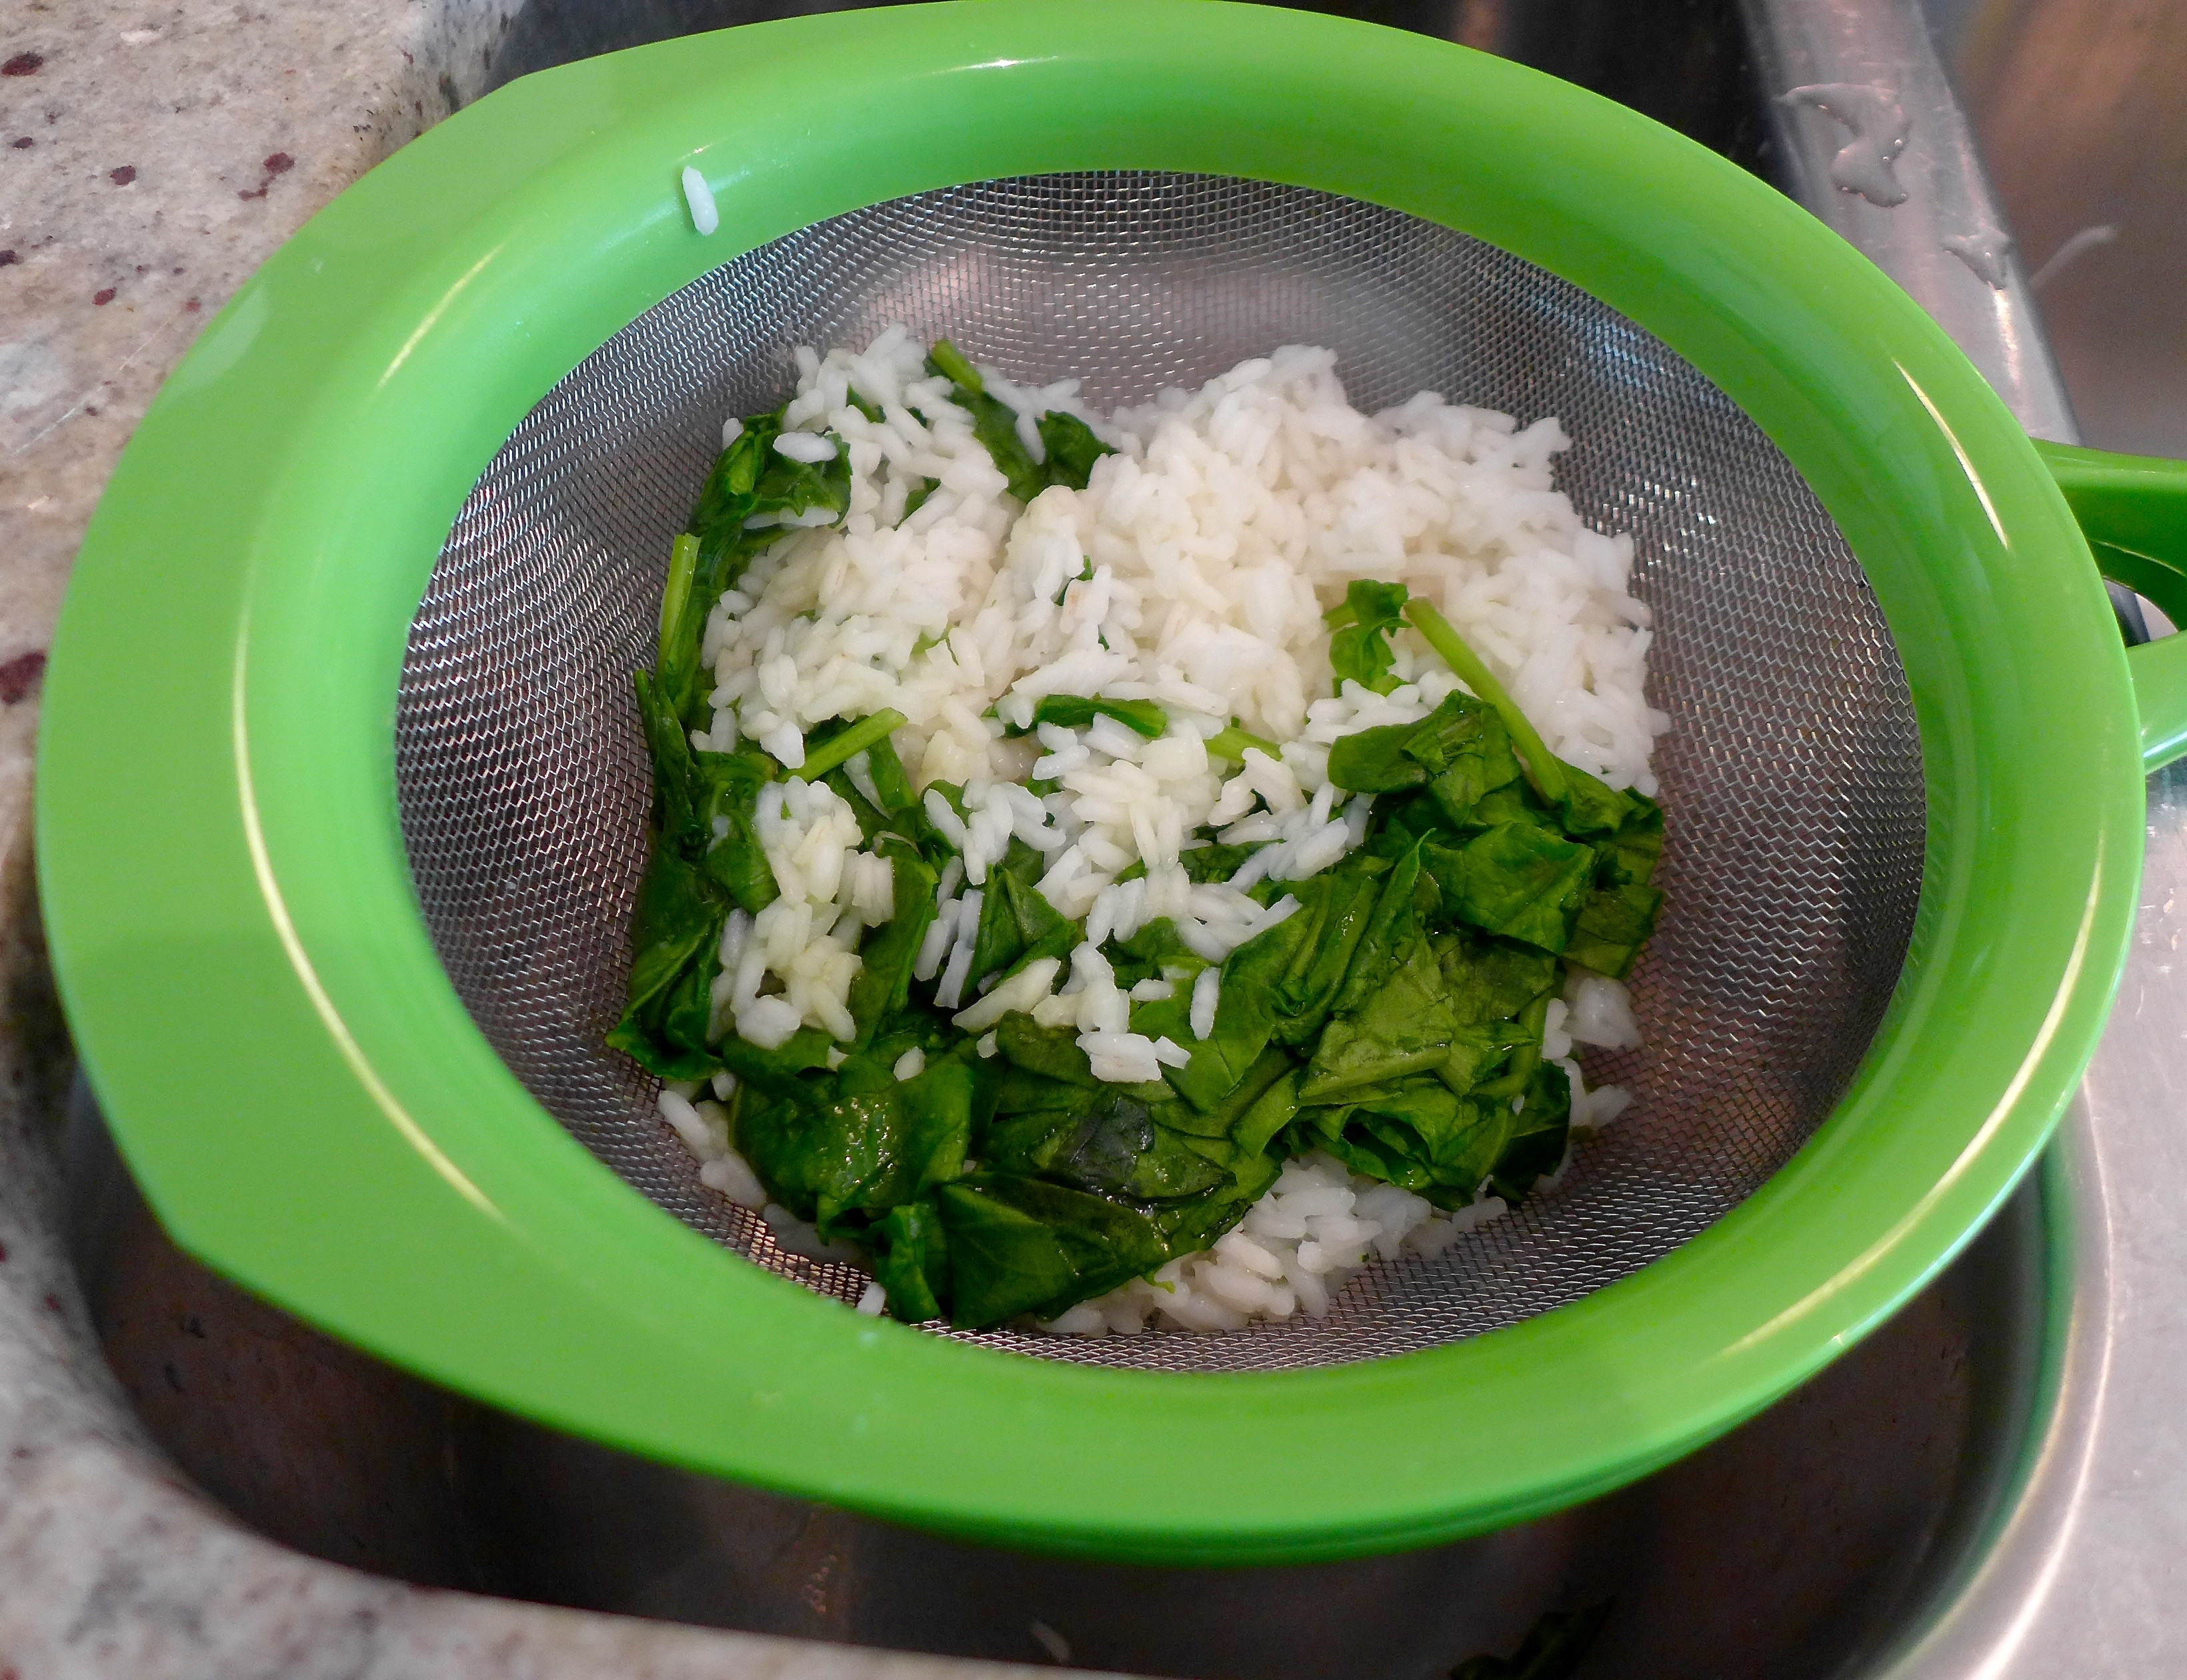 Drain rice and spinach.